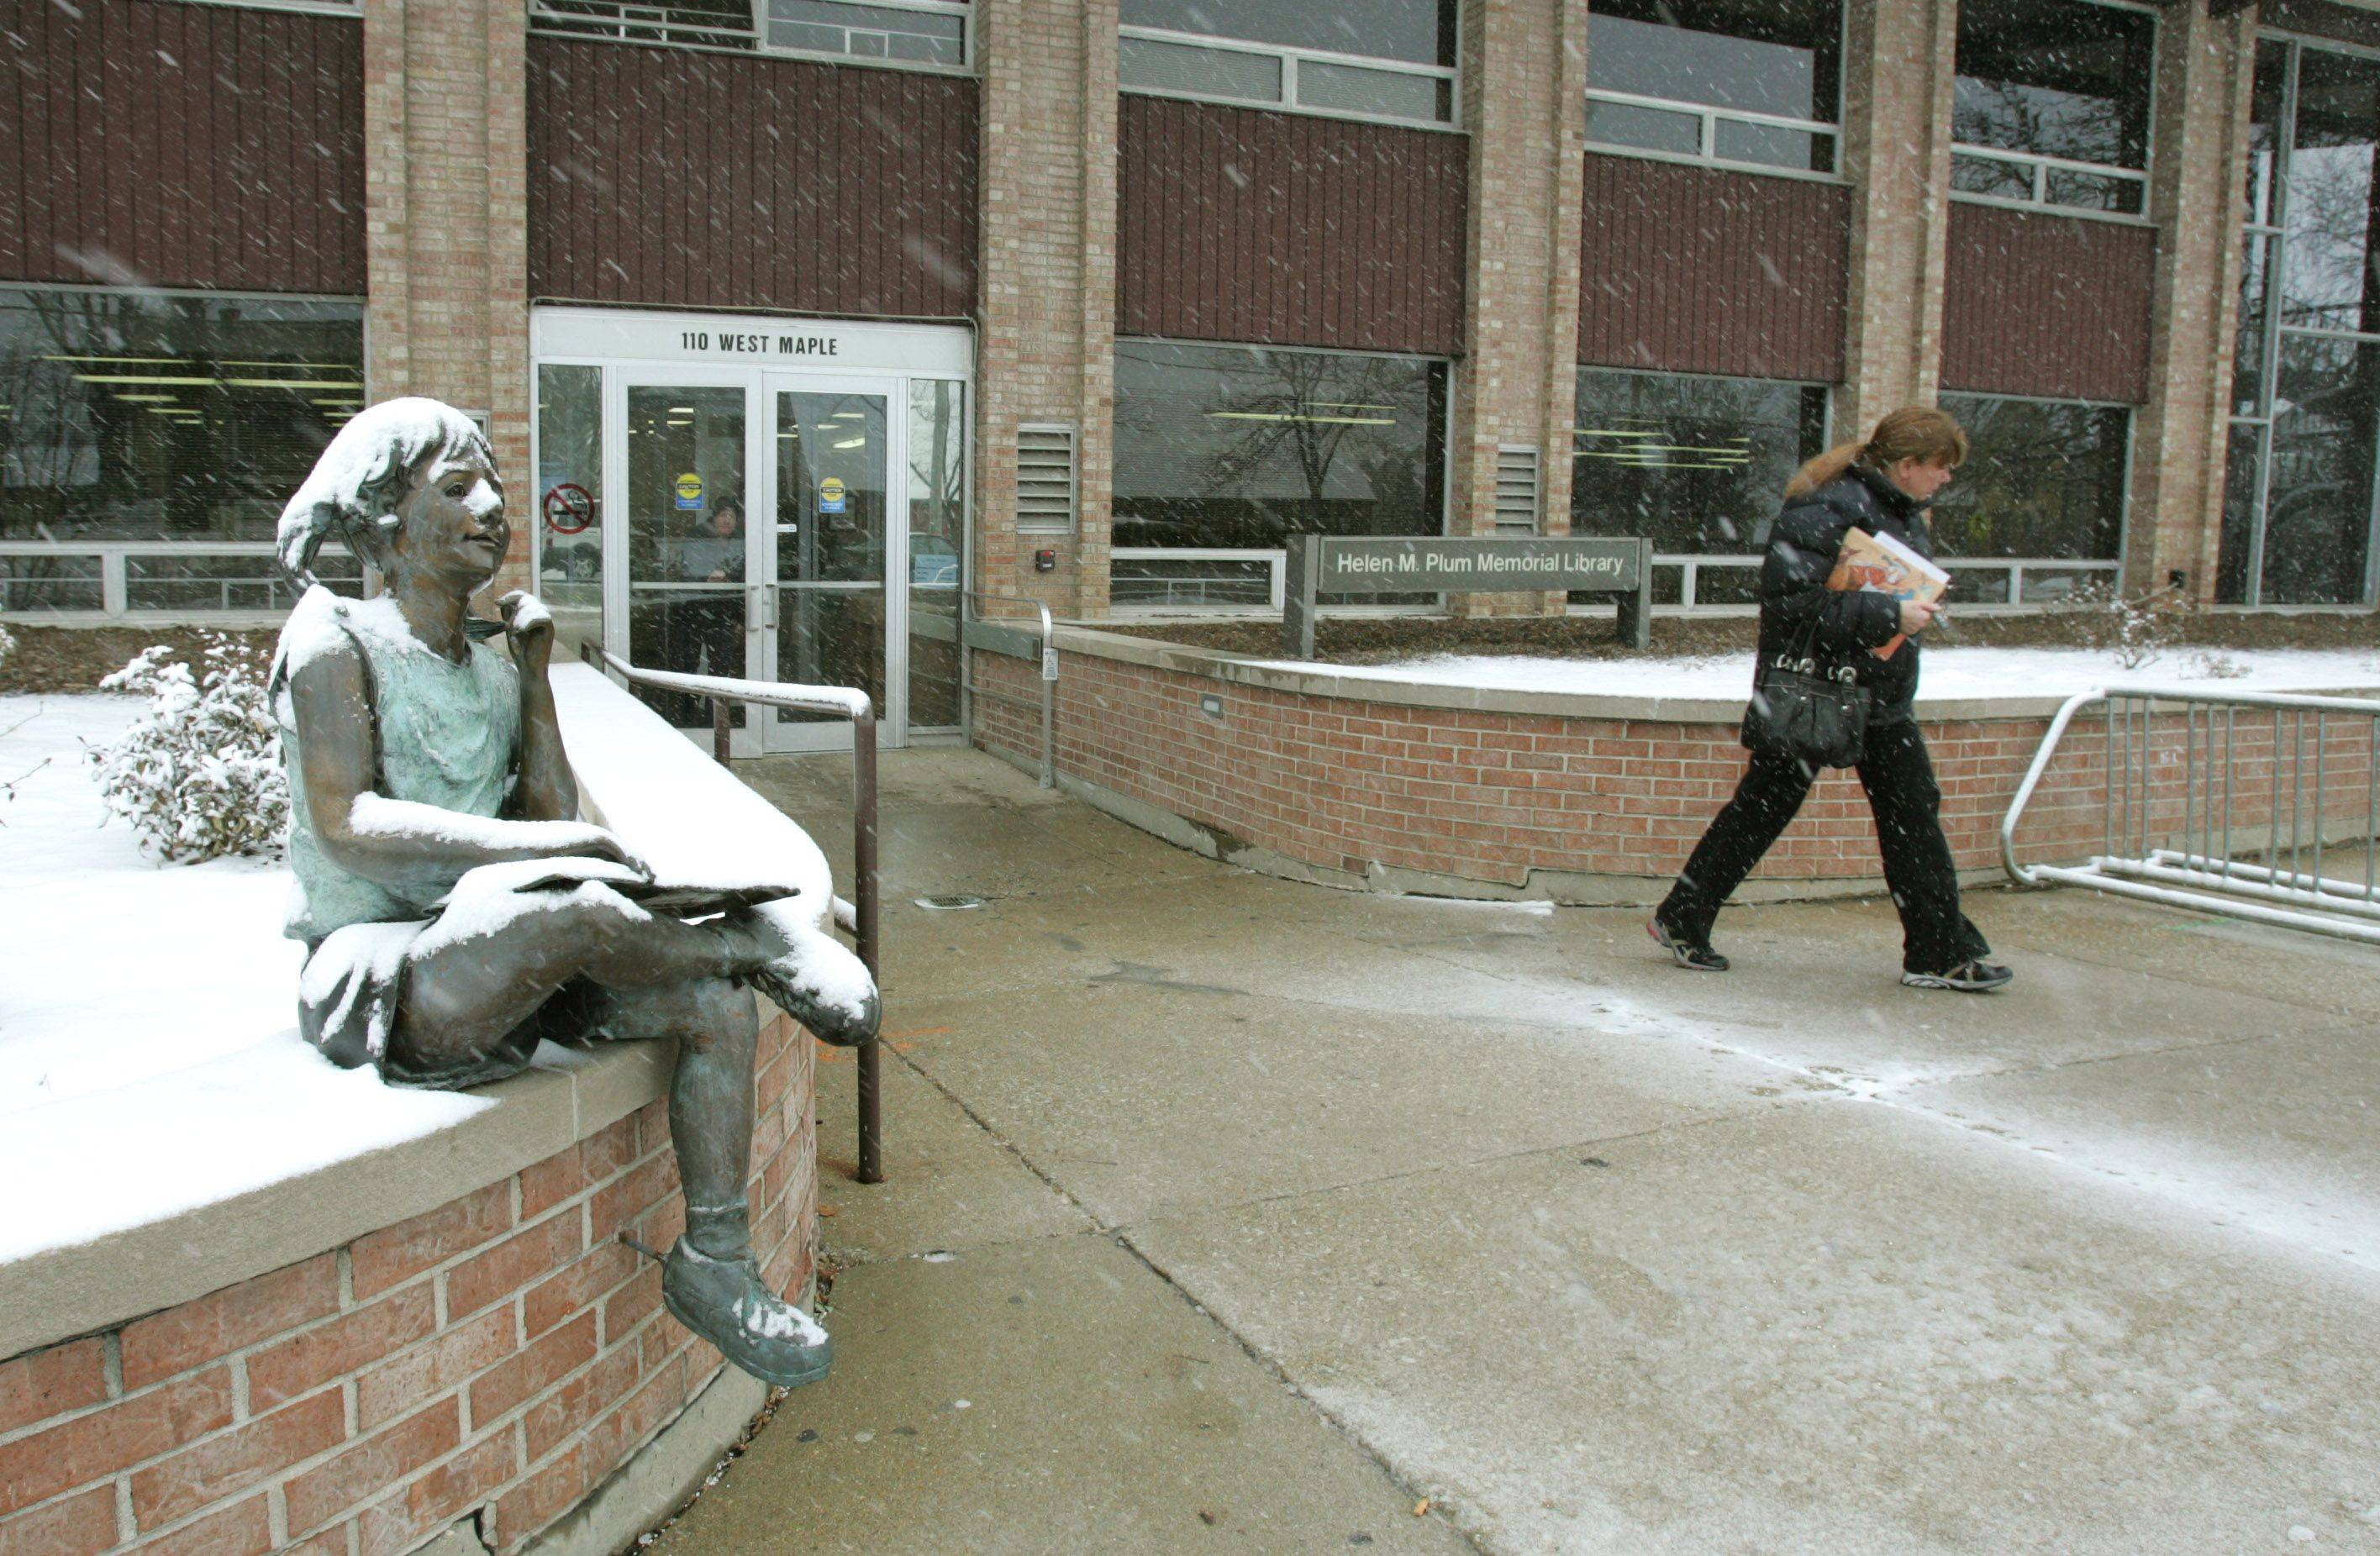 Snow coats a statue outside the Helen Plum Memorial Library in Lombard during Thursday's storm.